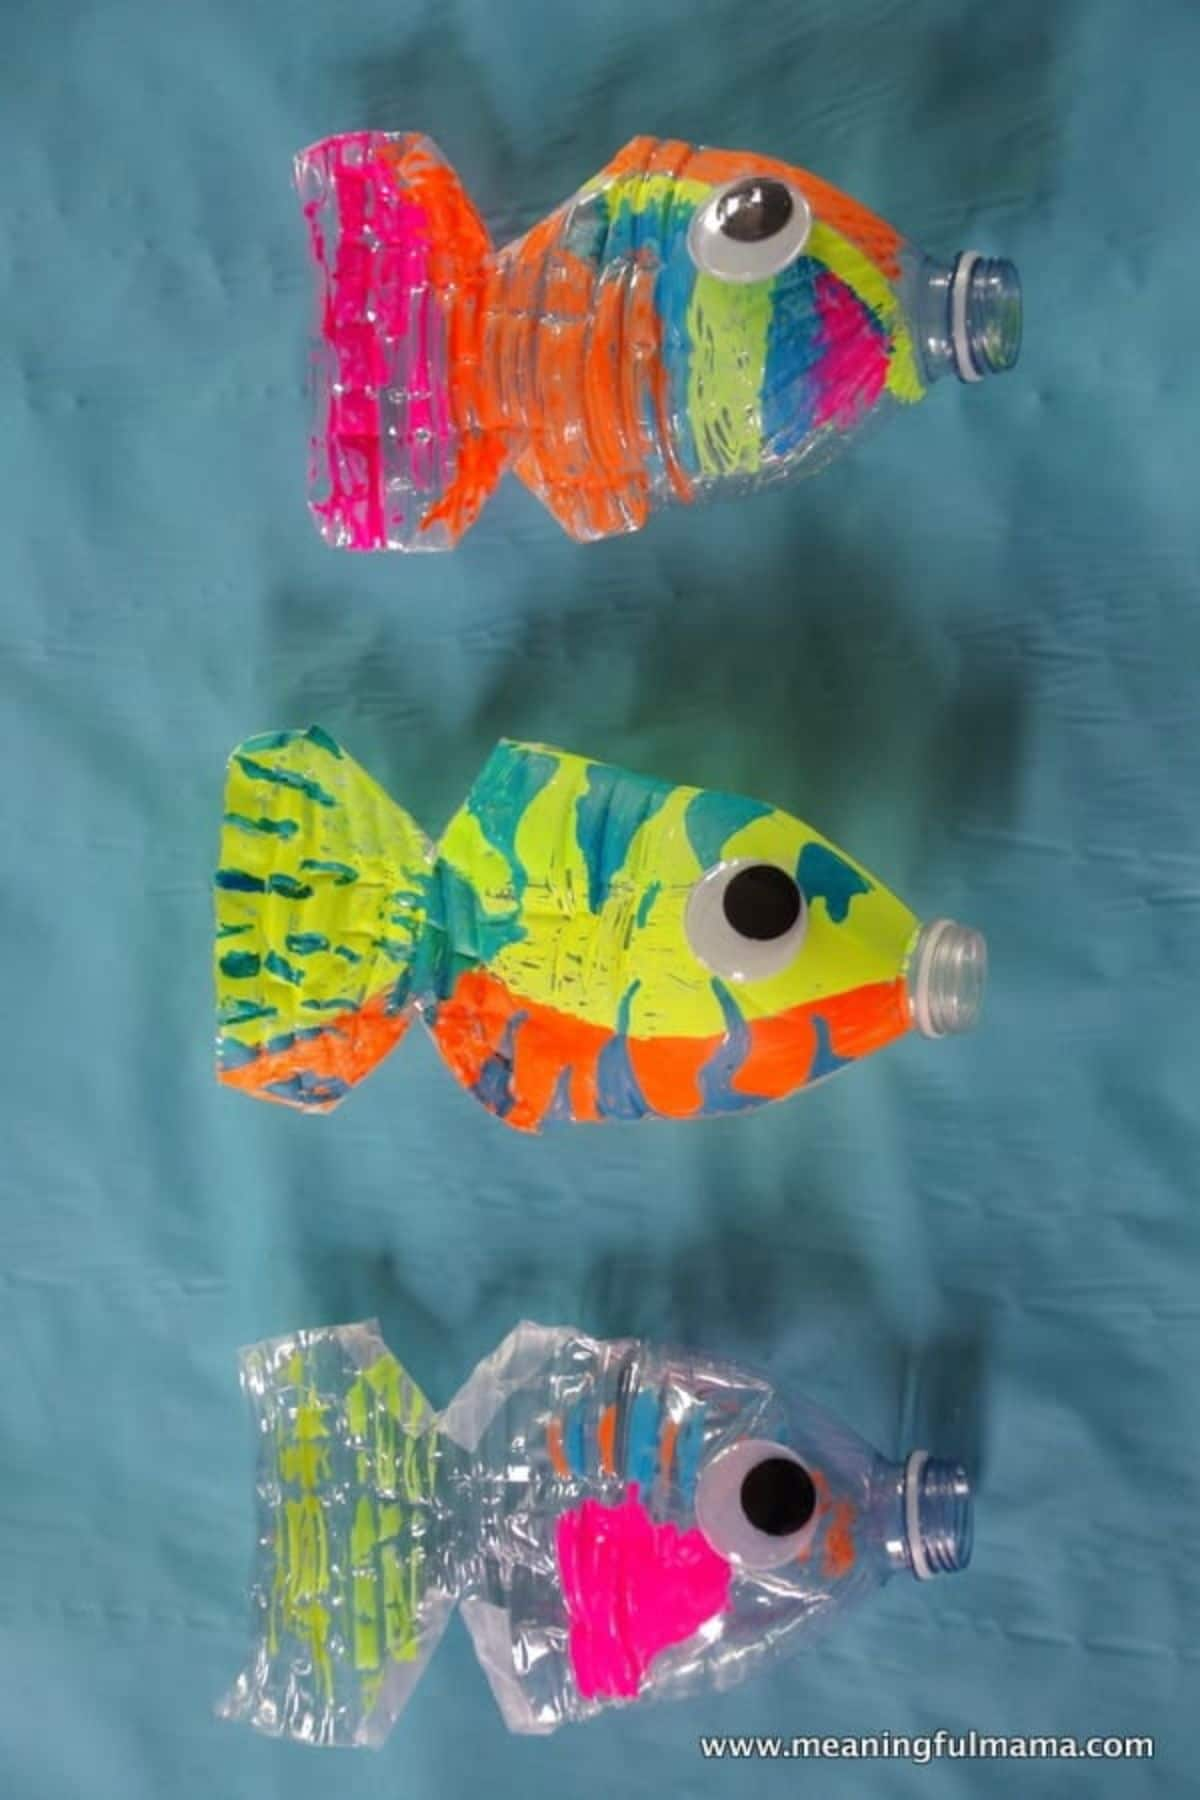 against a blue background are 3 crushed water bottles made up like fish with paint and googly eyes